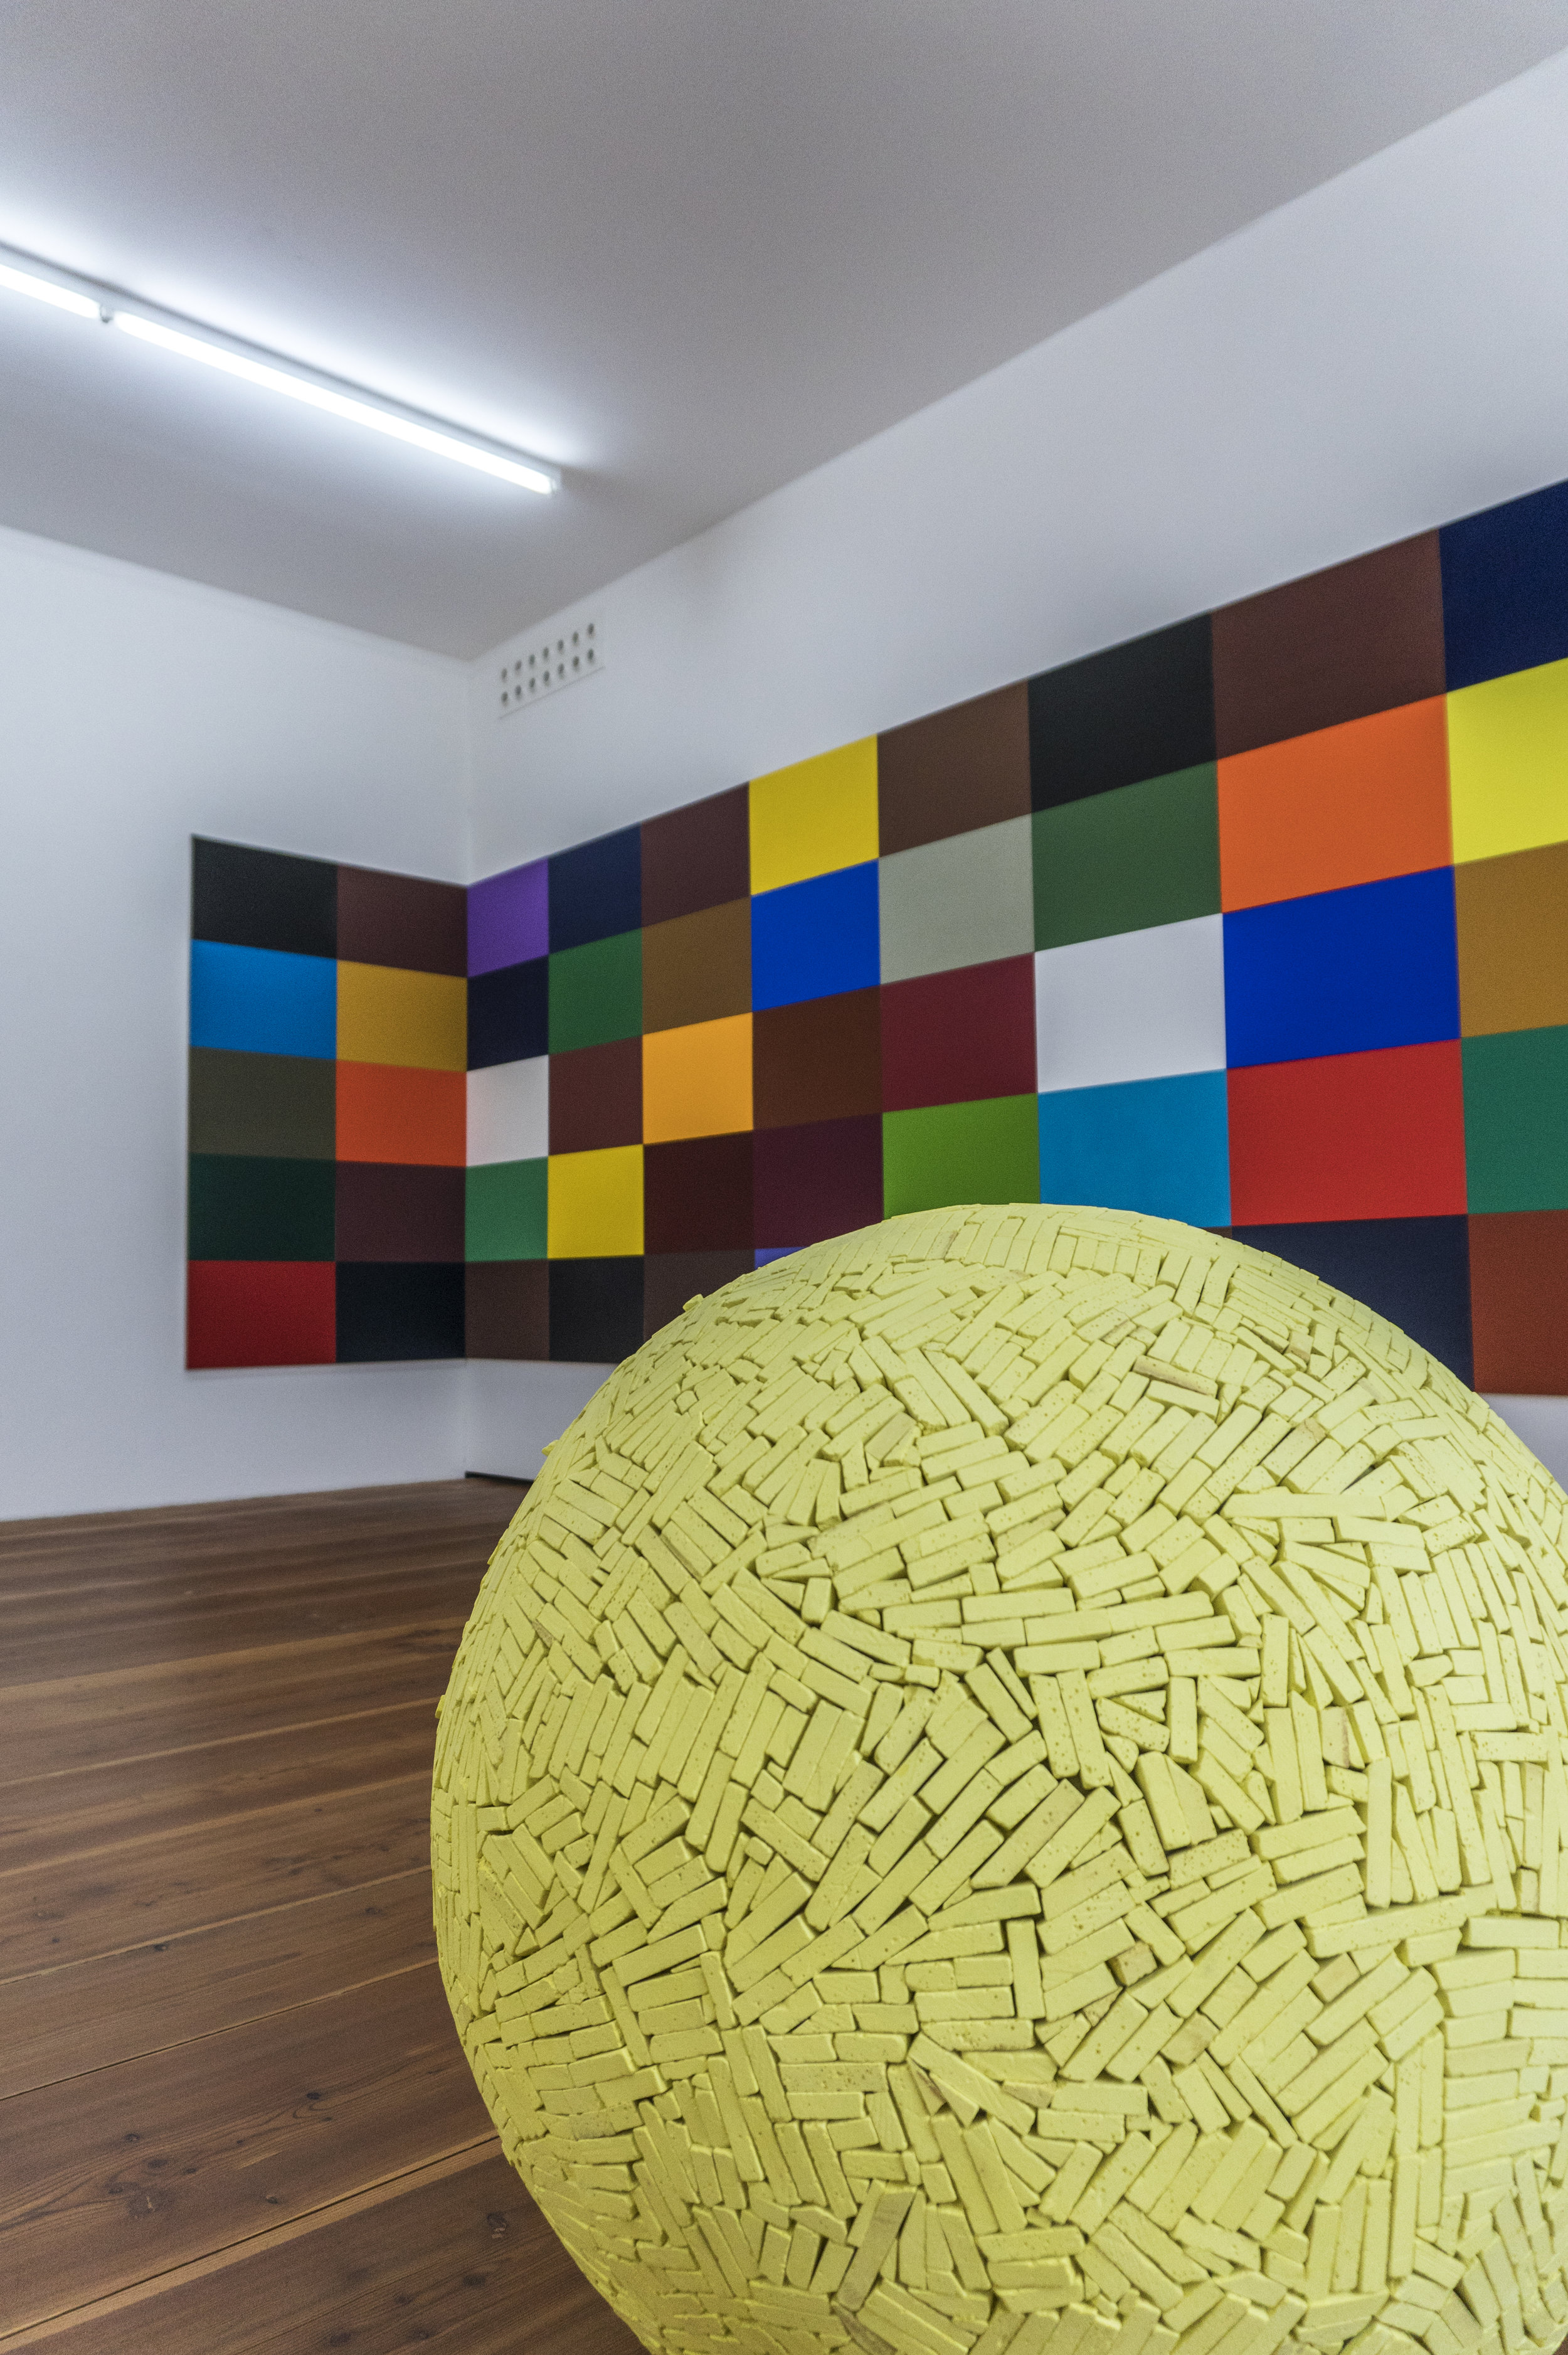 "Gerhard Langenfeld : "" 50 Farbtafeln "", 2005 (In the back) and Reiner Seliger: "" Pallone giallo "", 2010 (In foreground)"